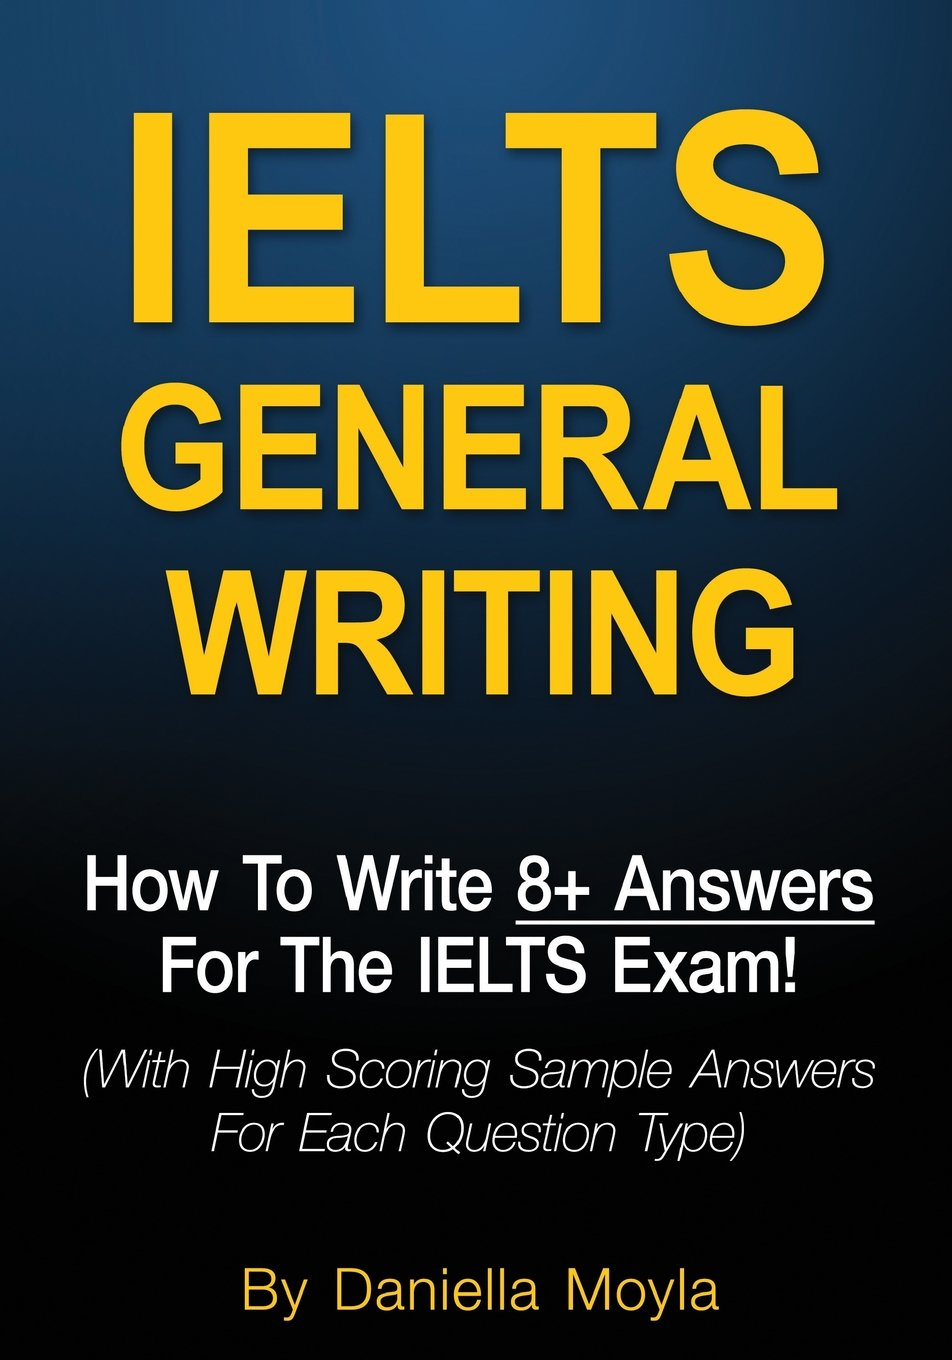 IELTS General Writing: How To Write 8+ Answers For The IELTS